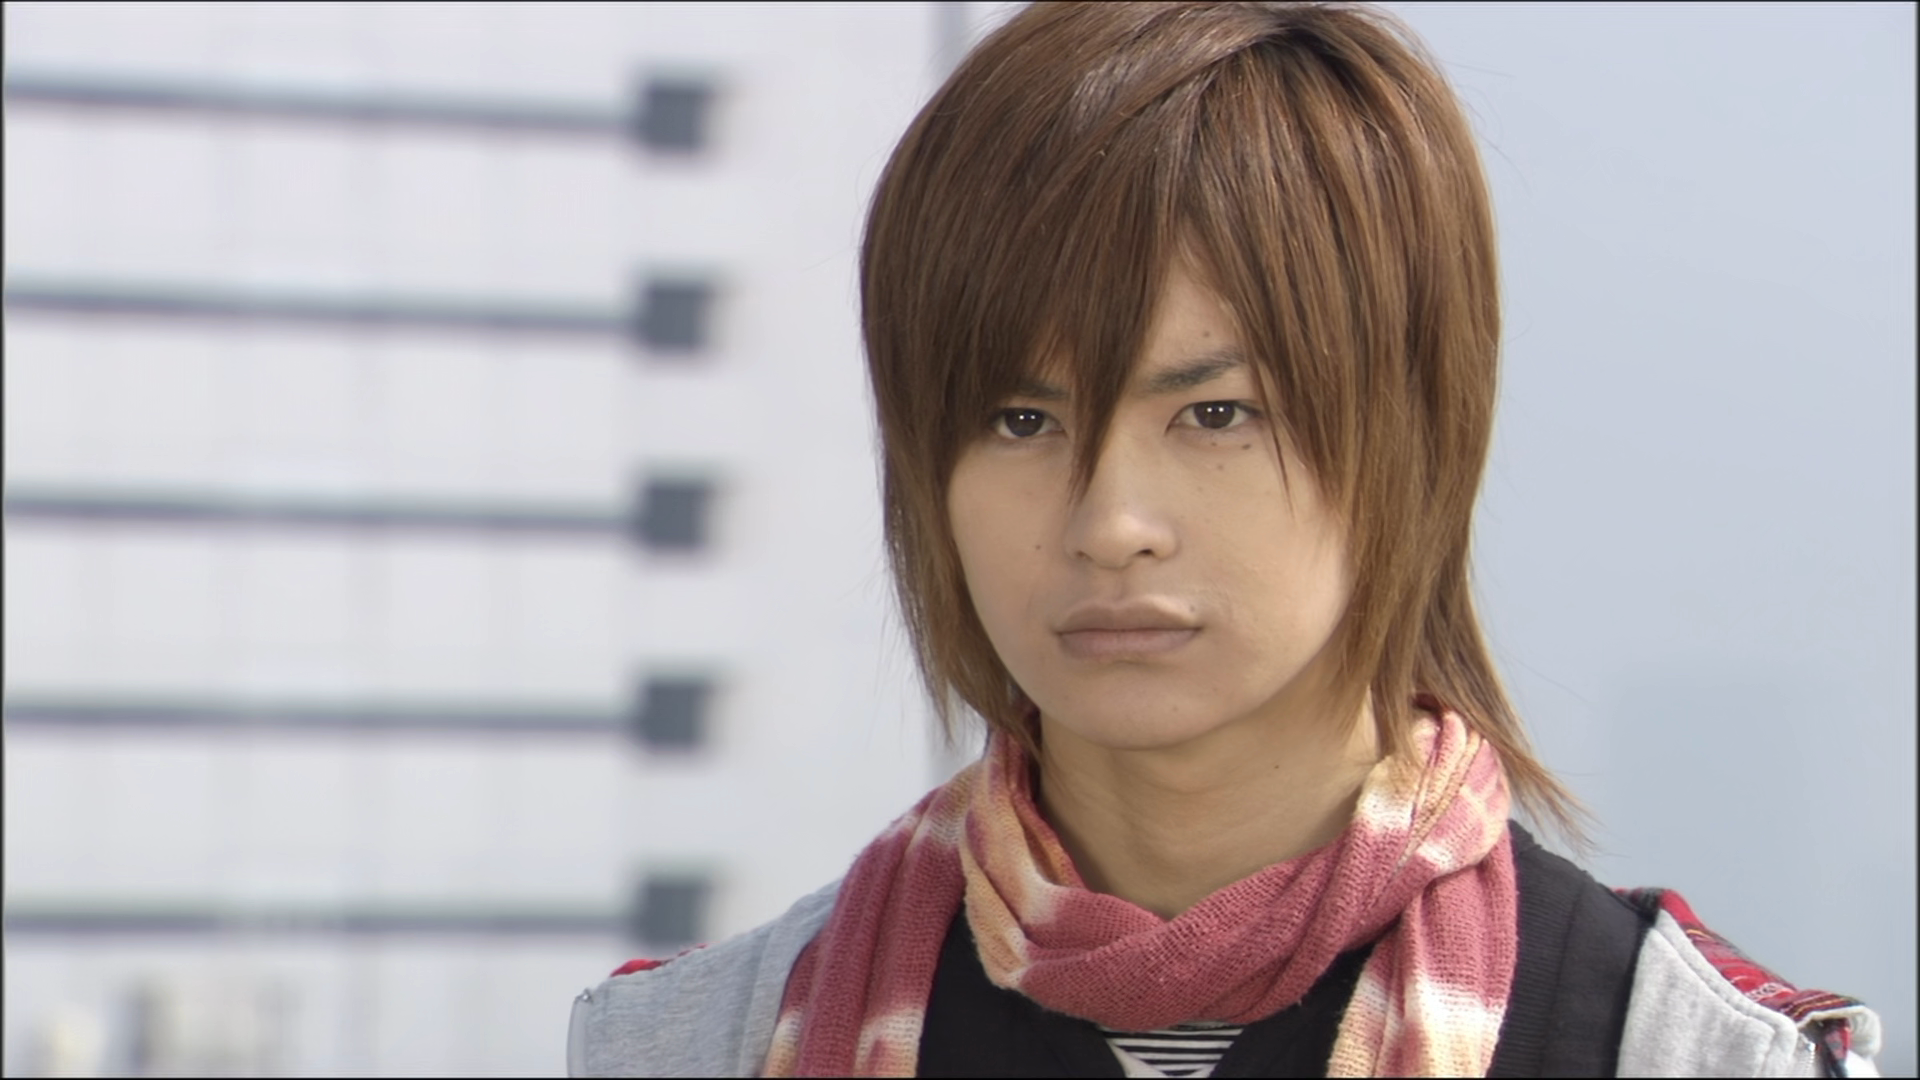 Wataru Kurenai | Kamen Rider Wiki | FANDOM powered by Wikia